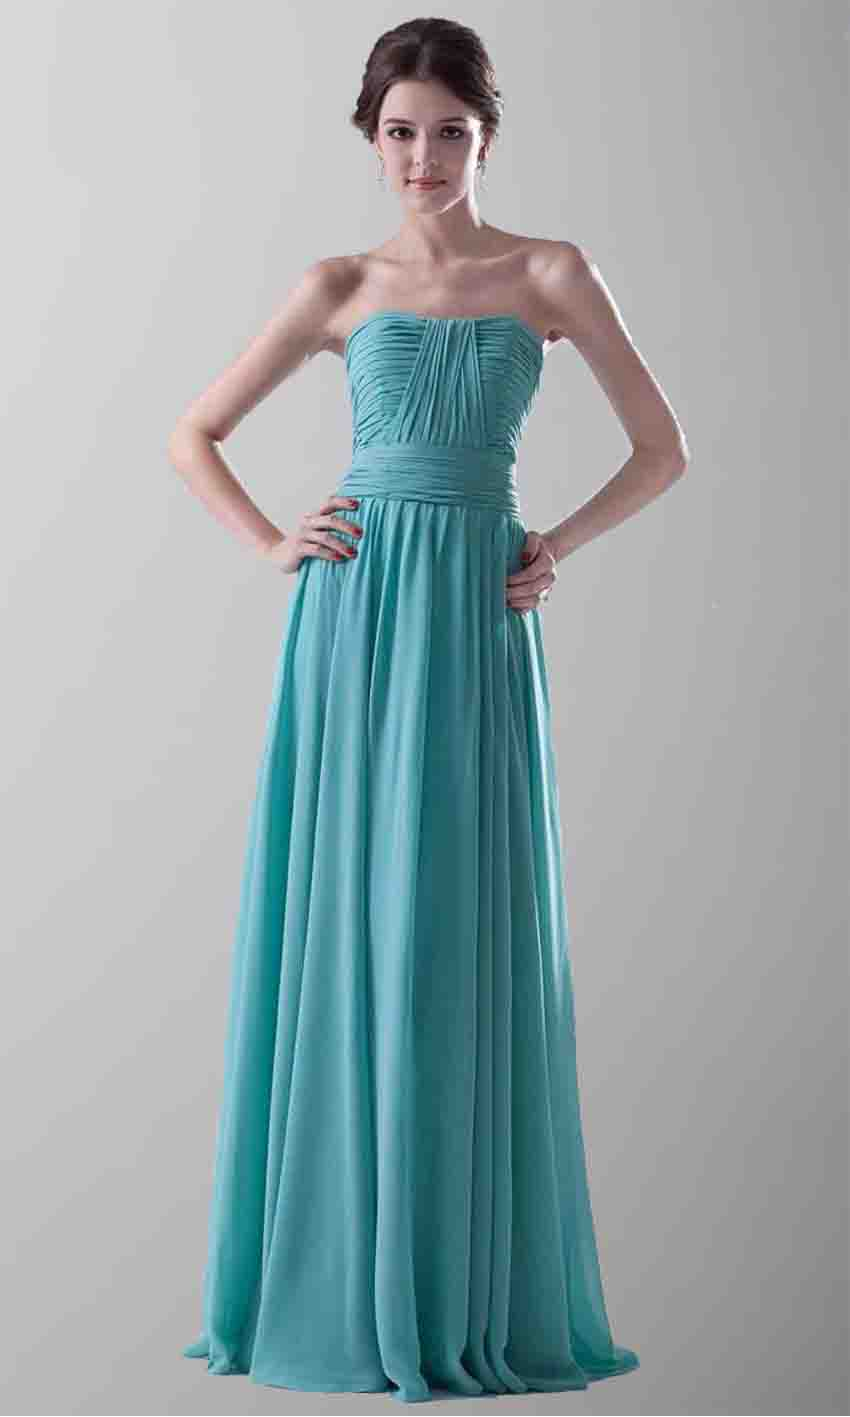 Special Pleated Wide Waist Cummerburd Prom Dresses KSP227 [KSP227] - £87.00 : Cheap Prom Dresses Uk, Bridesmaid Dresses, 2014 Prom & Evening Dresses, Look for cheap elegant prom dresses 2014, cocktail gowns, or dresses for special occasions? kissprom.co.uk offers various bridesmaid dresses, evening dress, free shipping to UK etc.